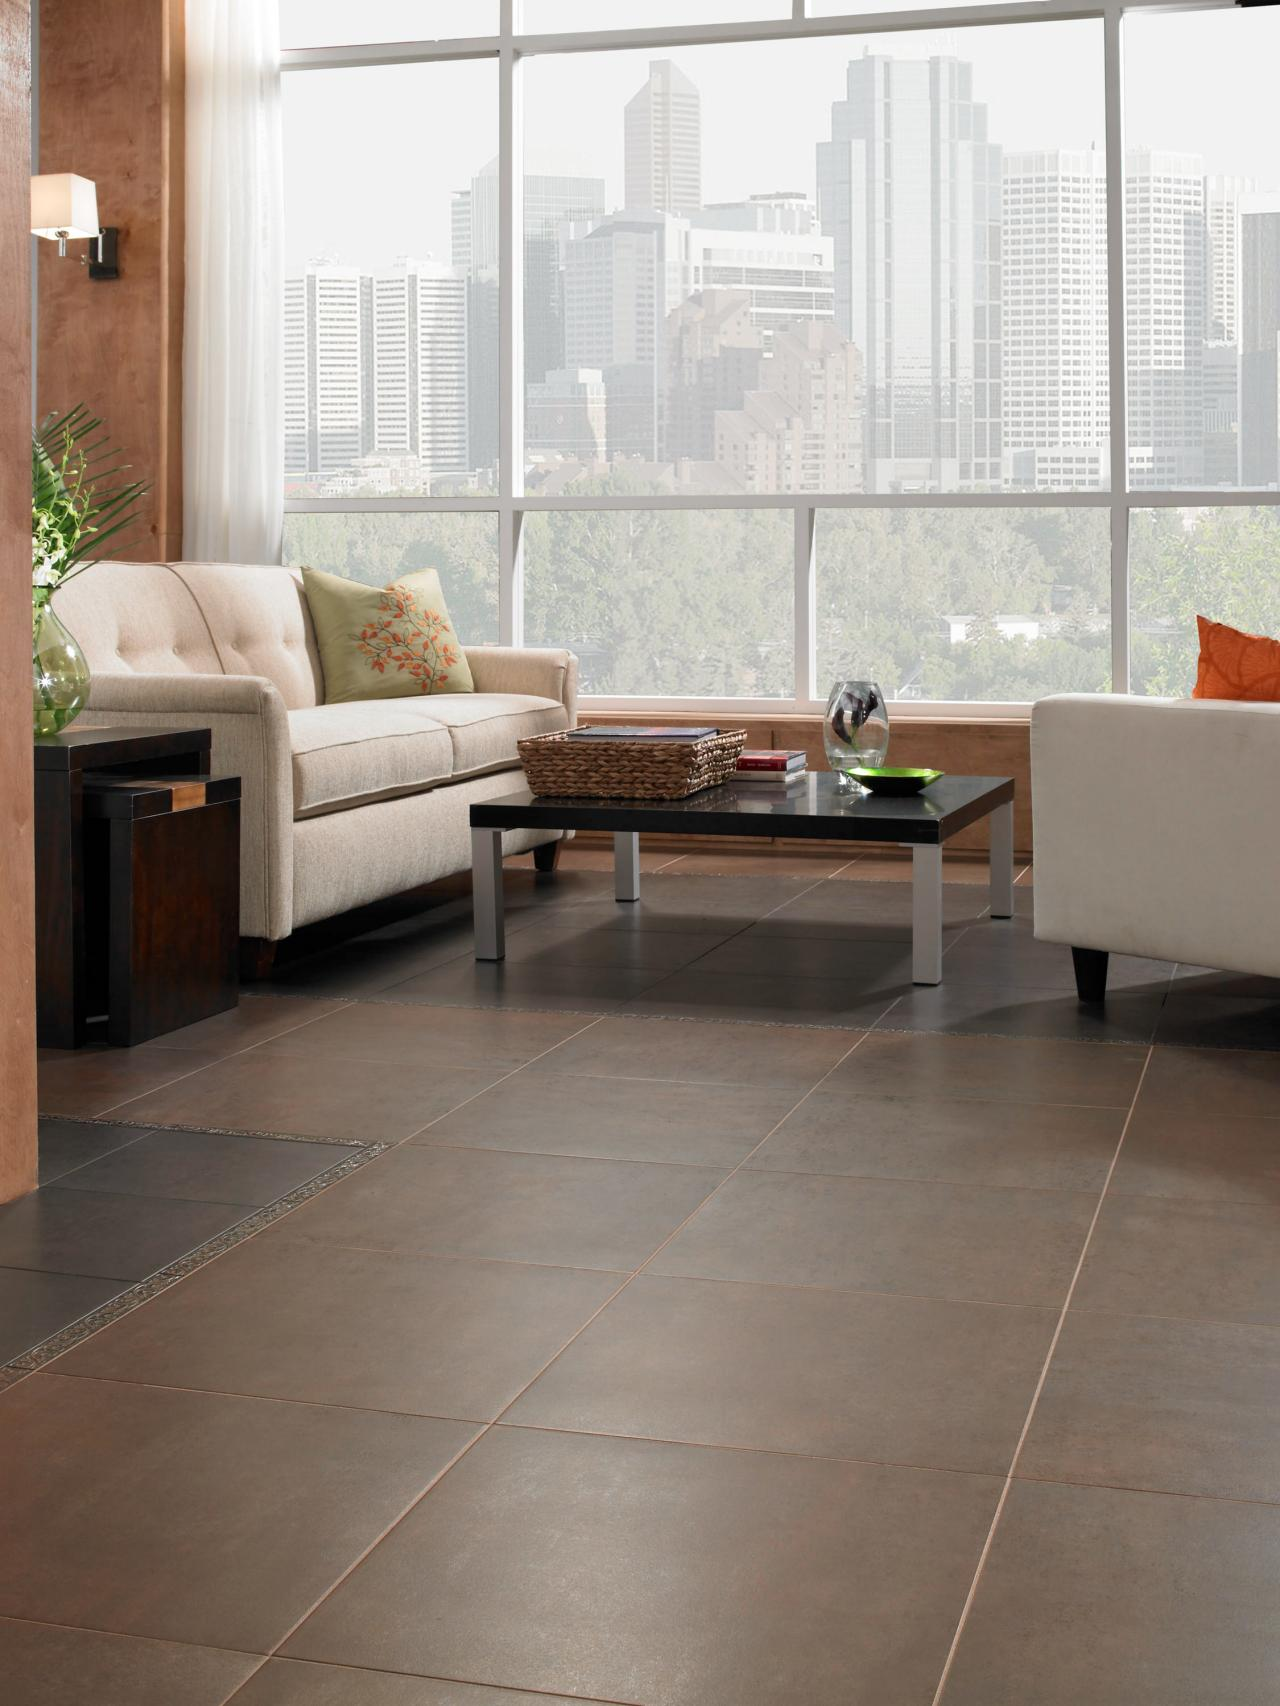 Living Room With Large Floor Tiles Hgtv